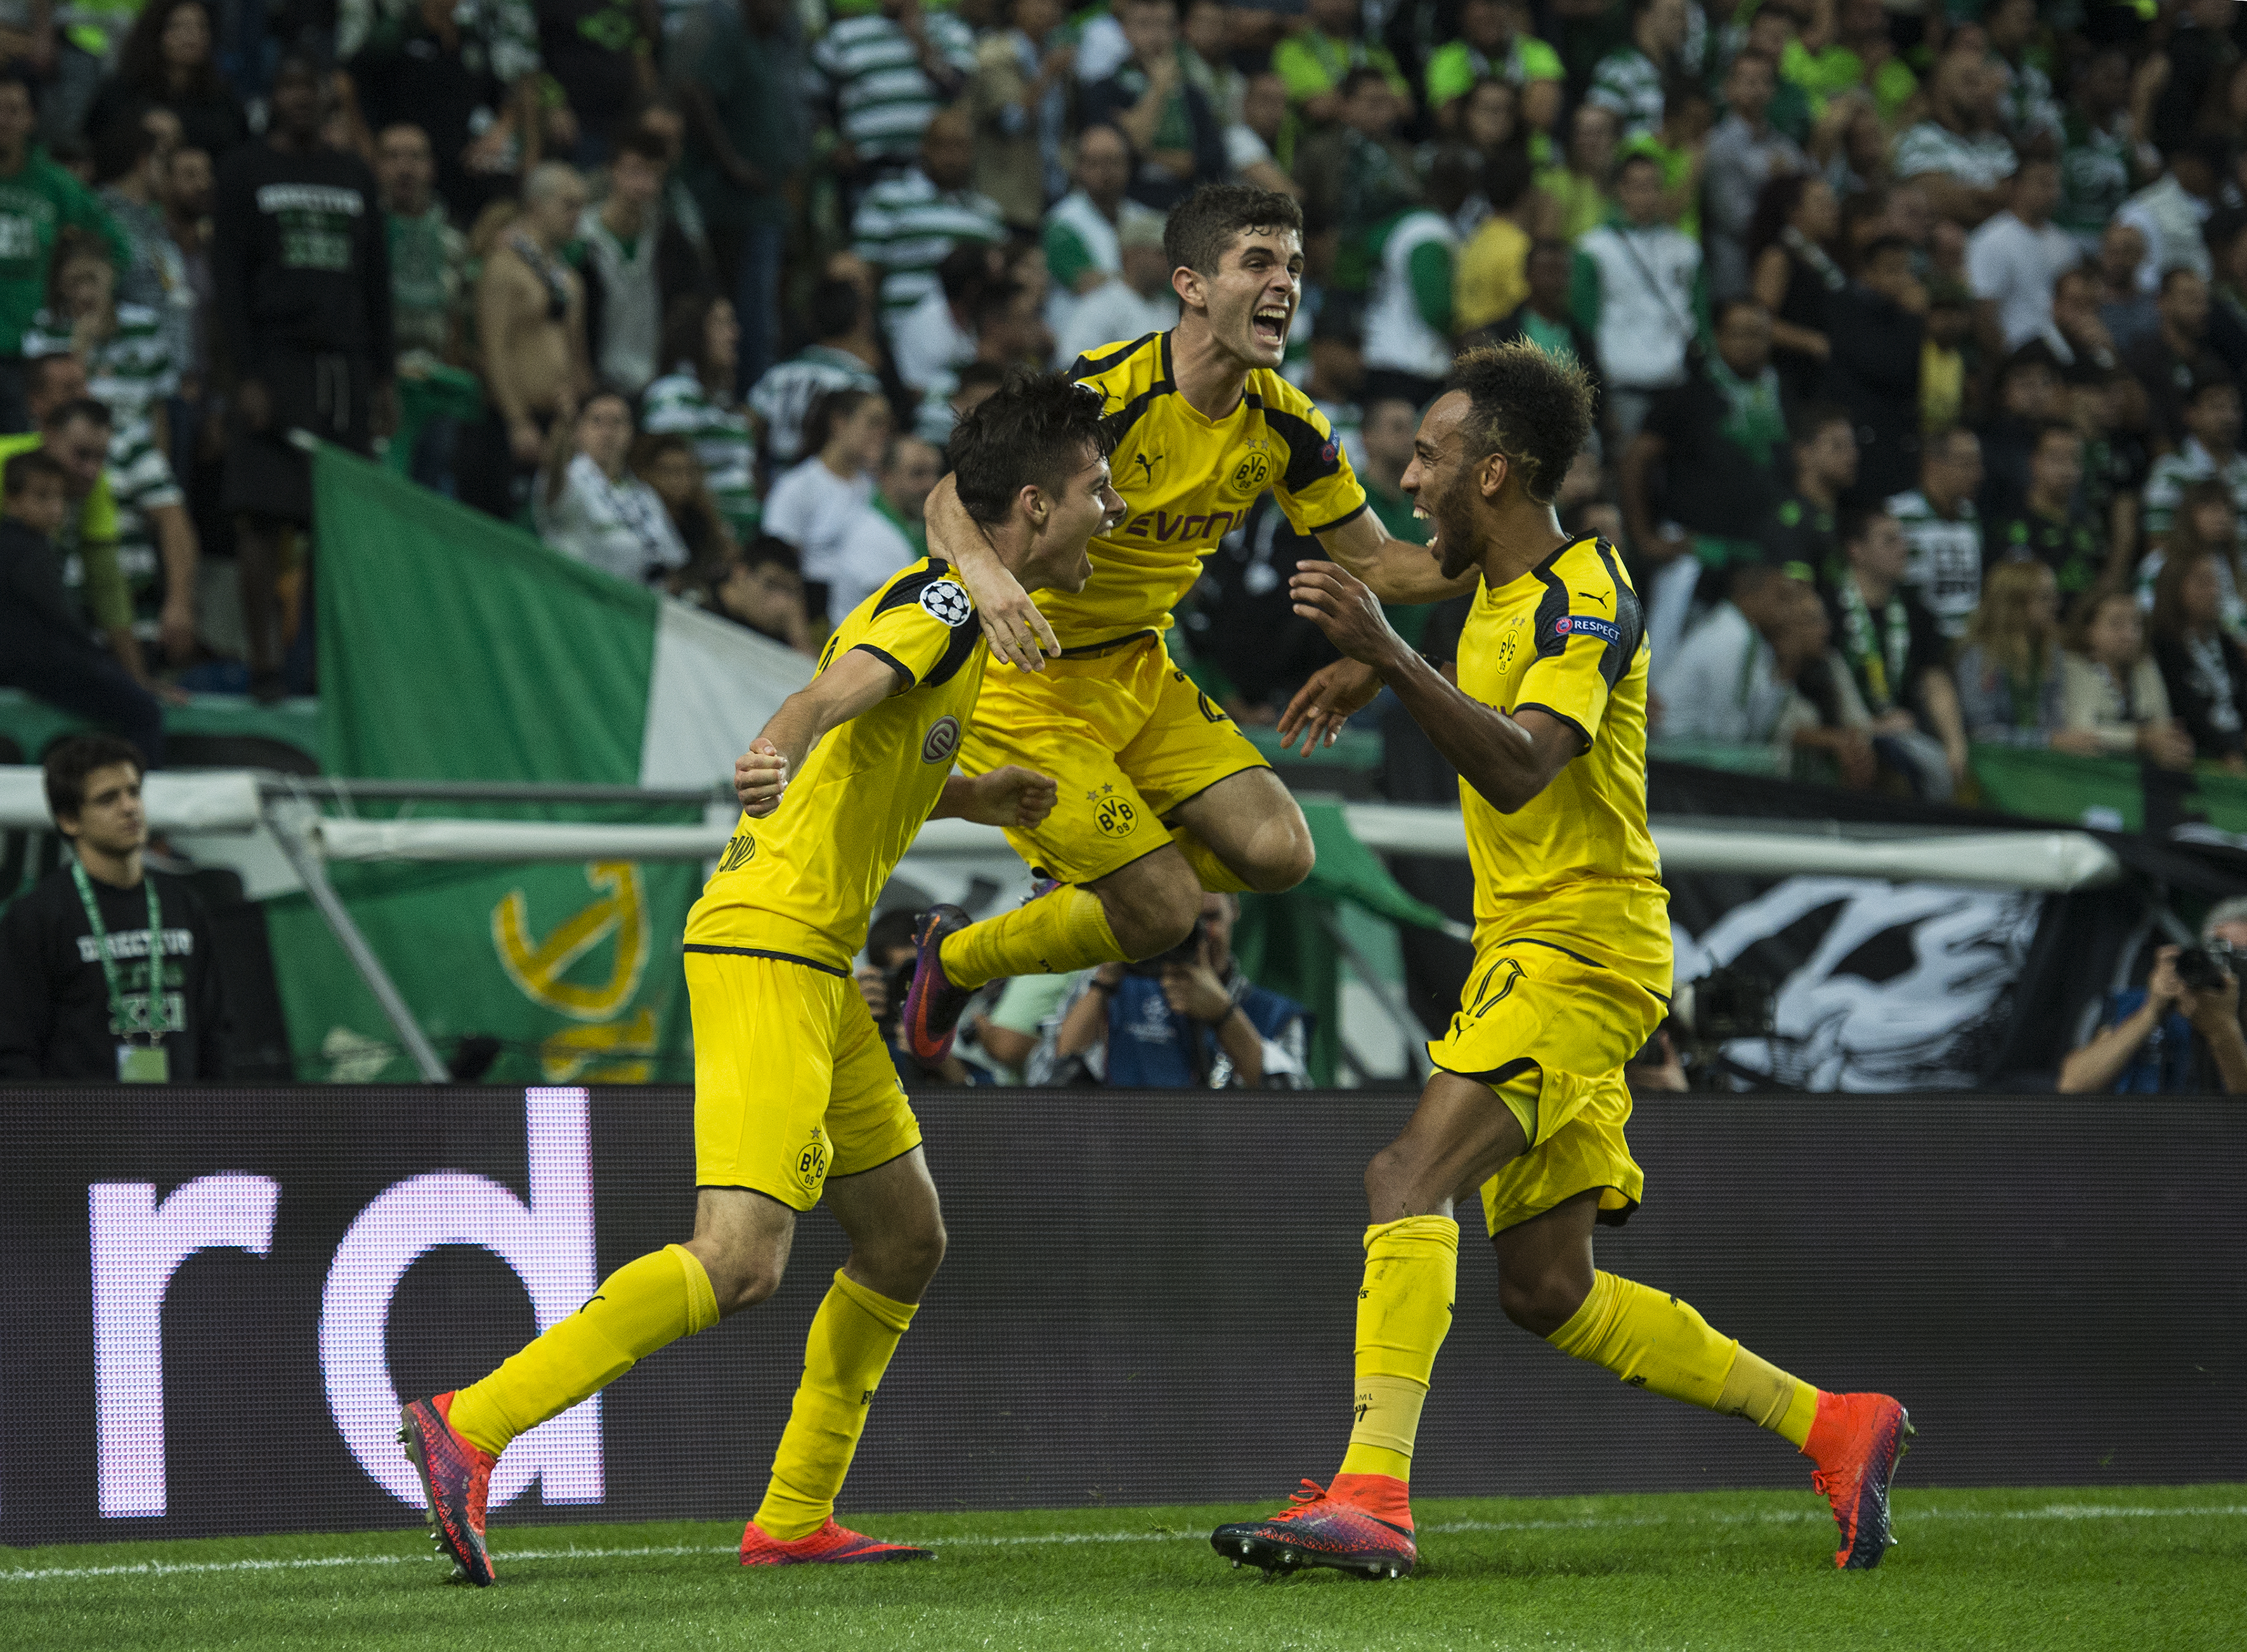 LISBON, PORTUGAL - OCTOBER 18: Julian Weigl (L) of Borussia Dortmund celebrates with teammates after scores a goal against SC Sporting during the UEFA Champions League match between SC Sporting and Borussia Dortmund at Estadio Jose Alvalade on October 18, 2016 in Lisbon, Lisboa. (Photo by Octavio Passos/Getty Images)